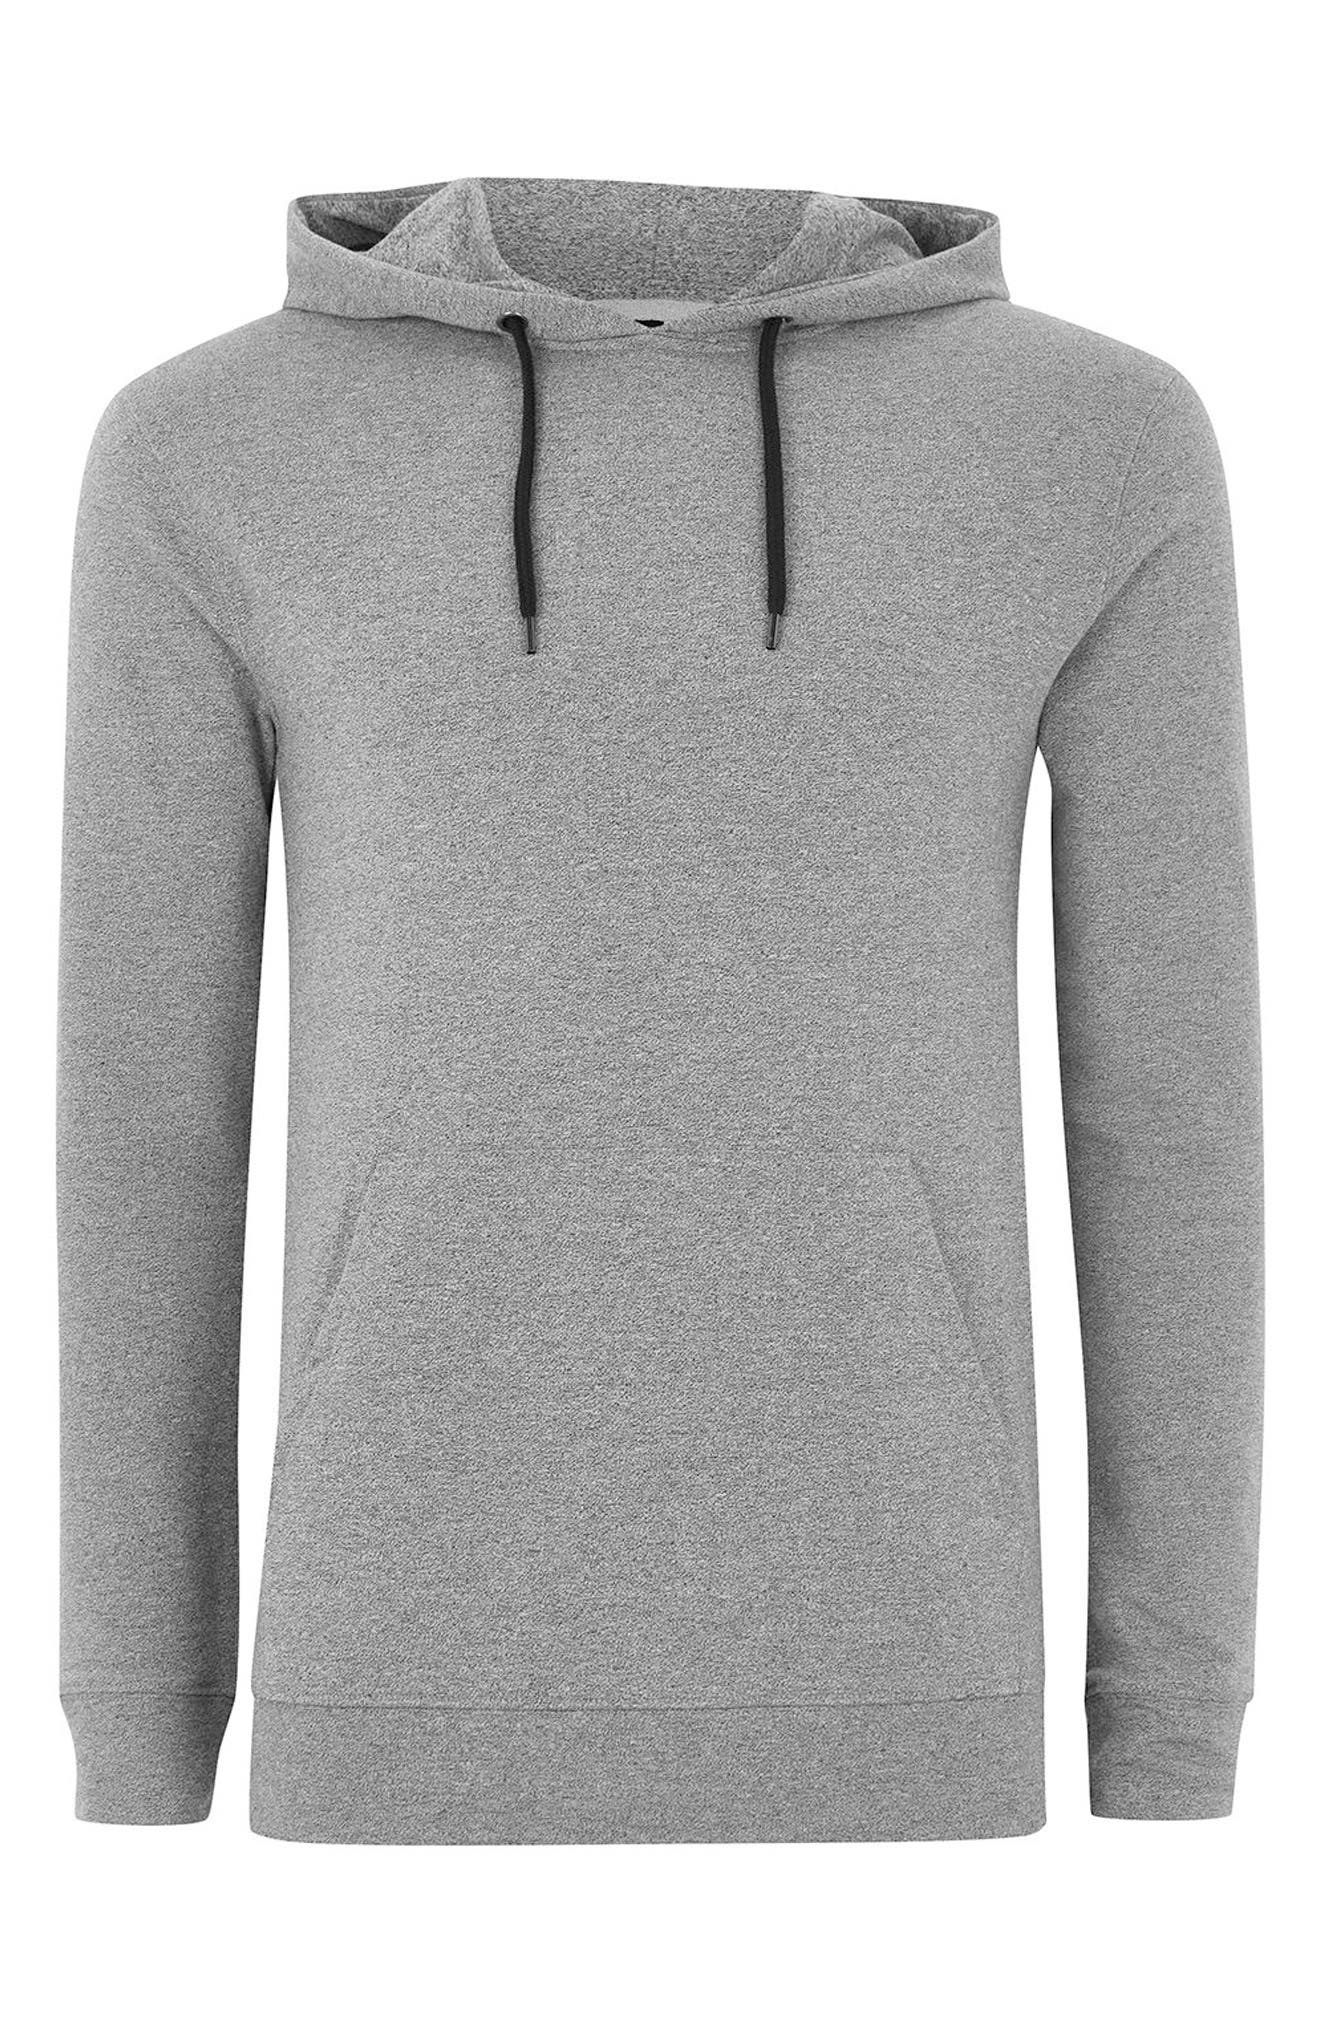 Muscle Fit Hoodie,                             Alternate thumbnail 4, color,                             020